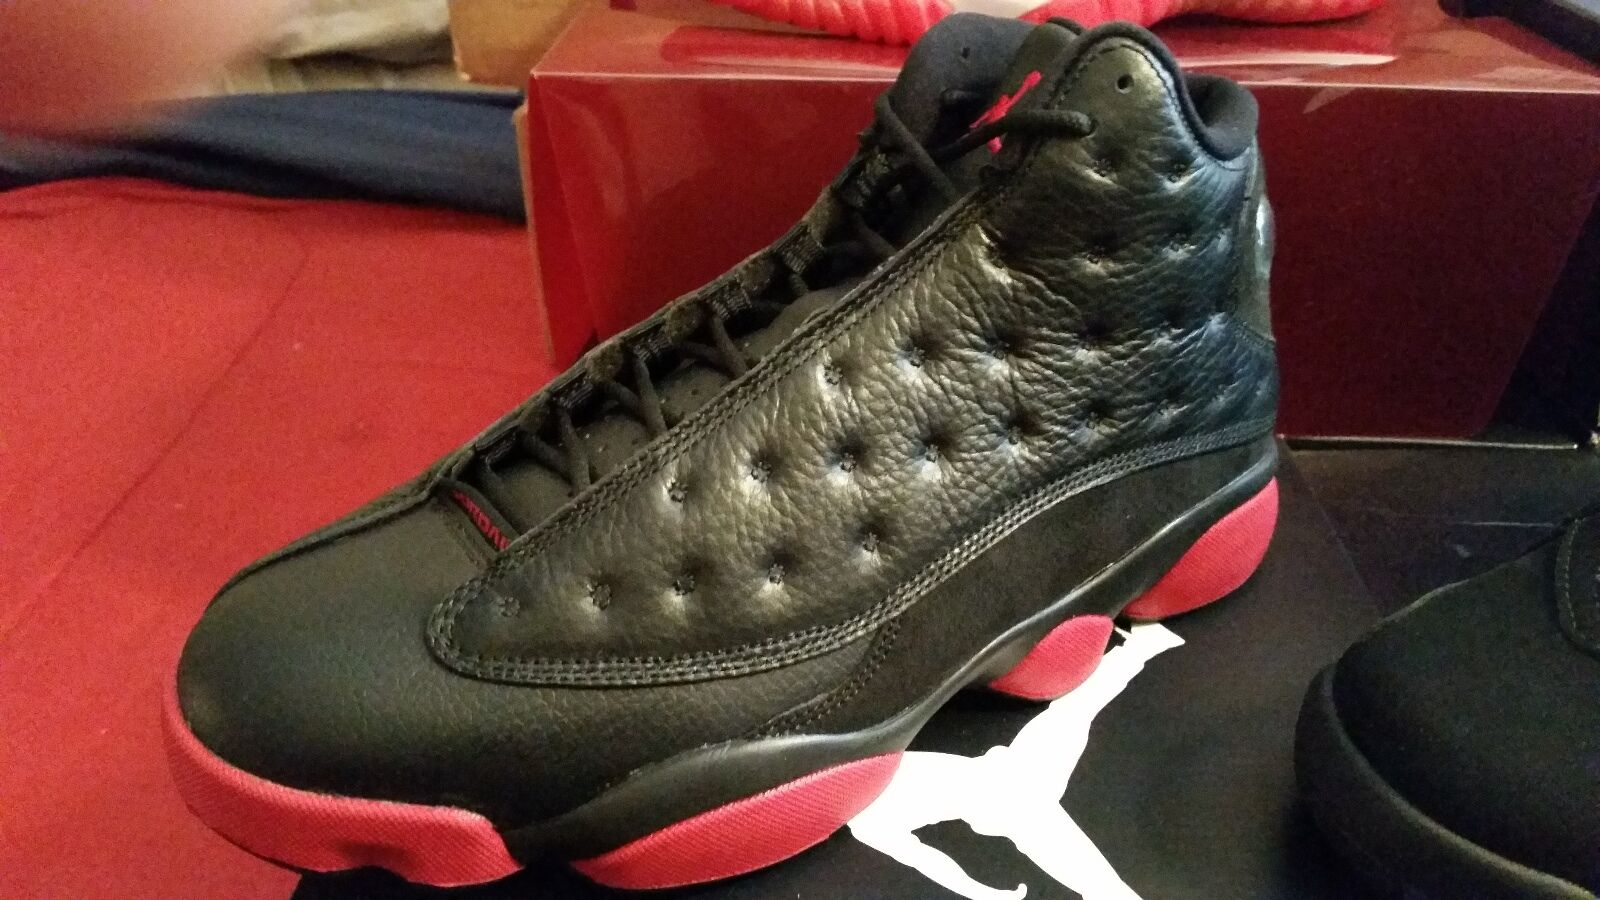 Nike Air Jordan Retro 13 XIII DIRTY BRED Black Gym Red  Size 10 Basketball shoes